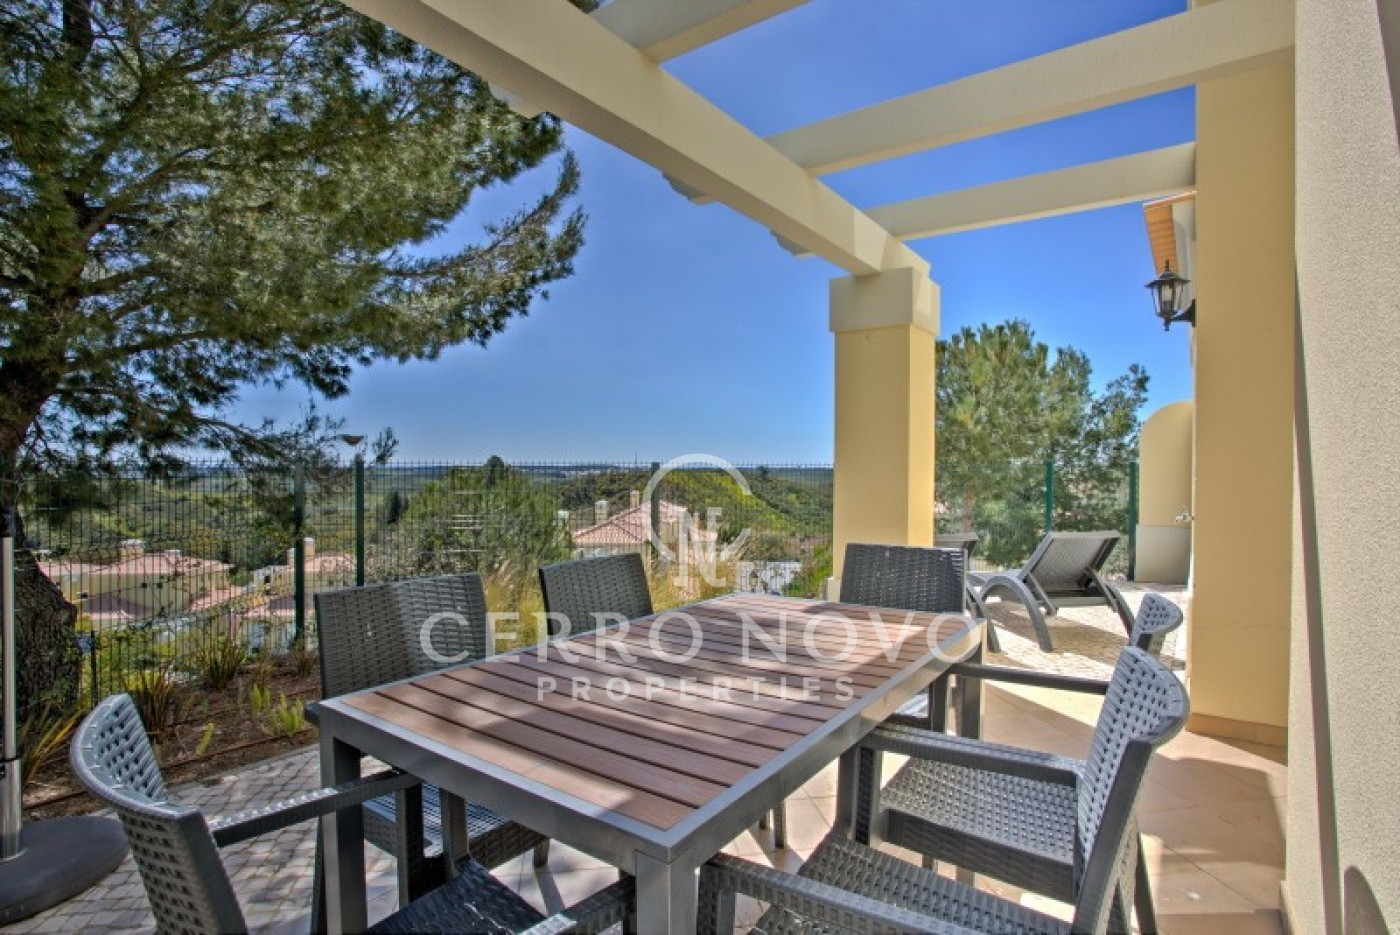 Three bedroom with spectacular countryside in the Algarve